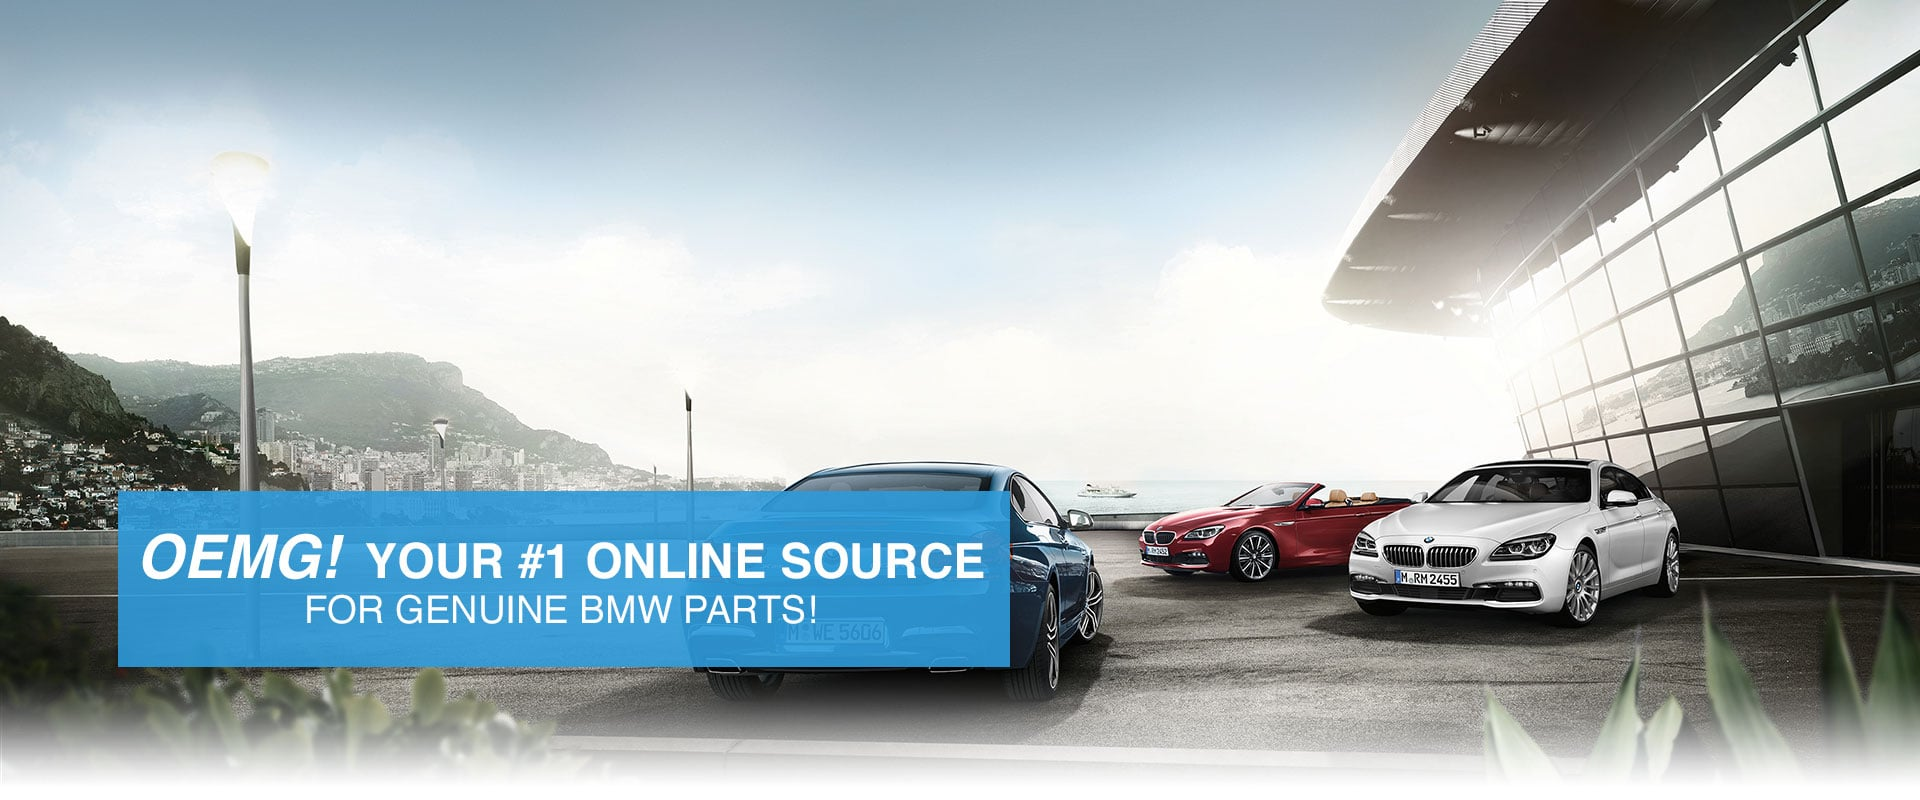 Genuine BMW Parts